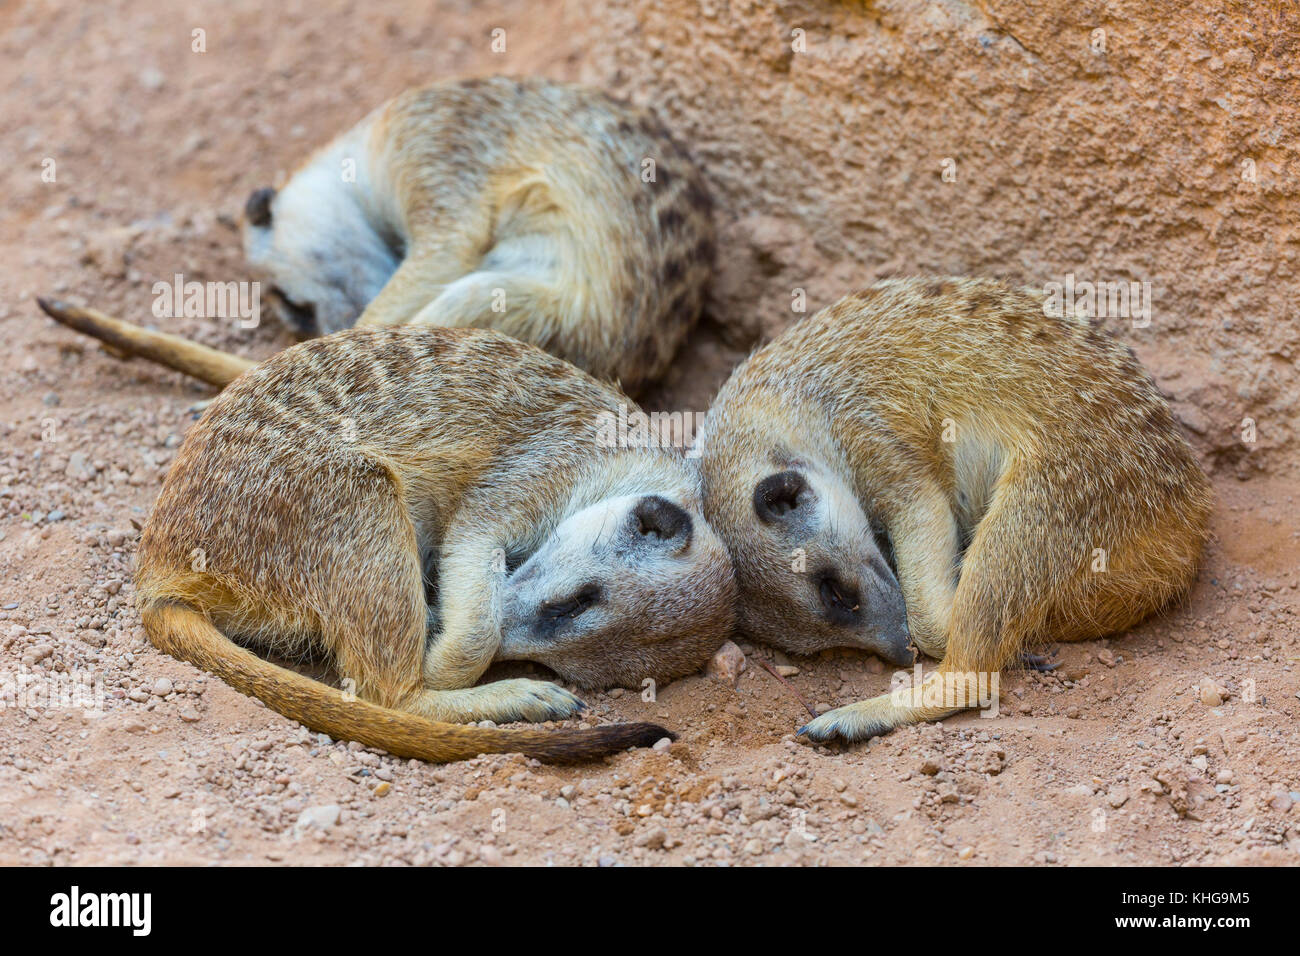 Sleeping. Meerkat or suricate (Suricata suricatta) Stock Photo